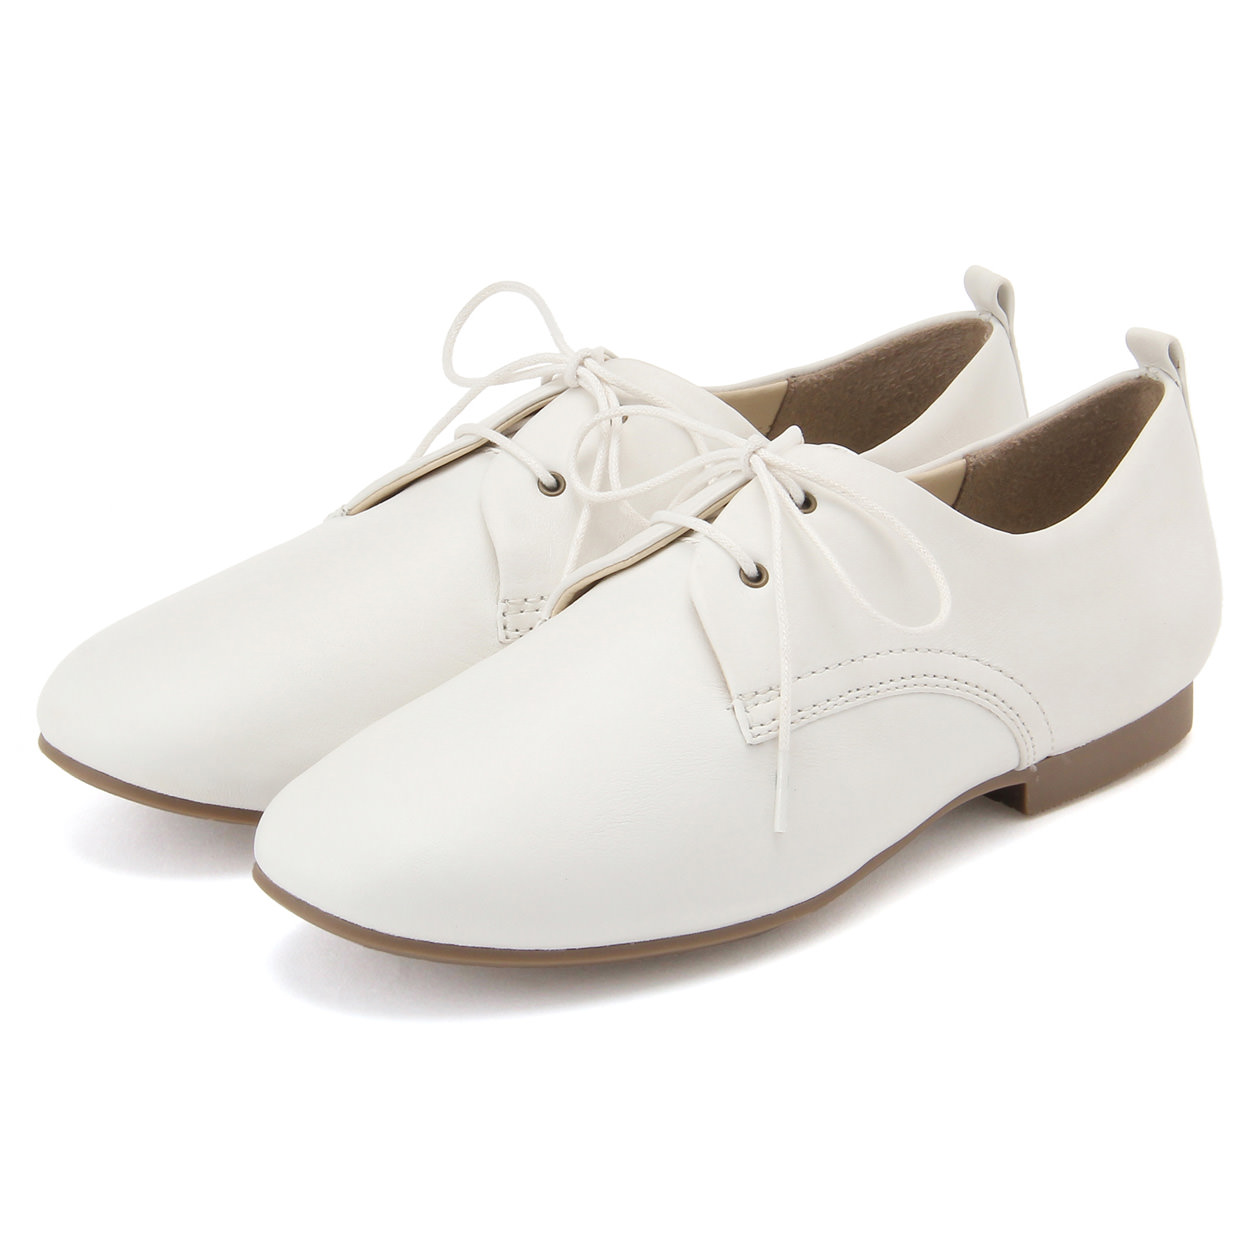 LEATHER LACE UP SHOES 25cm OFF WHITE